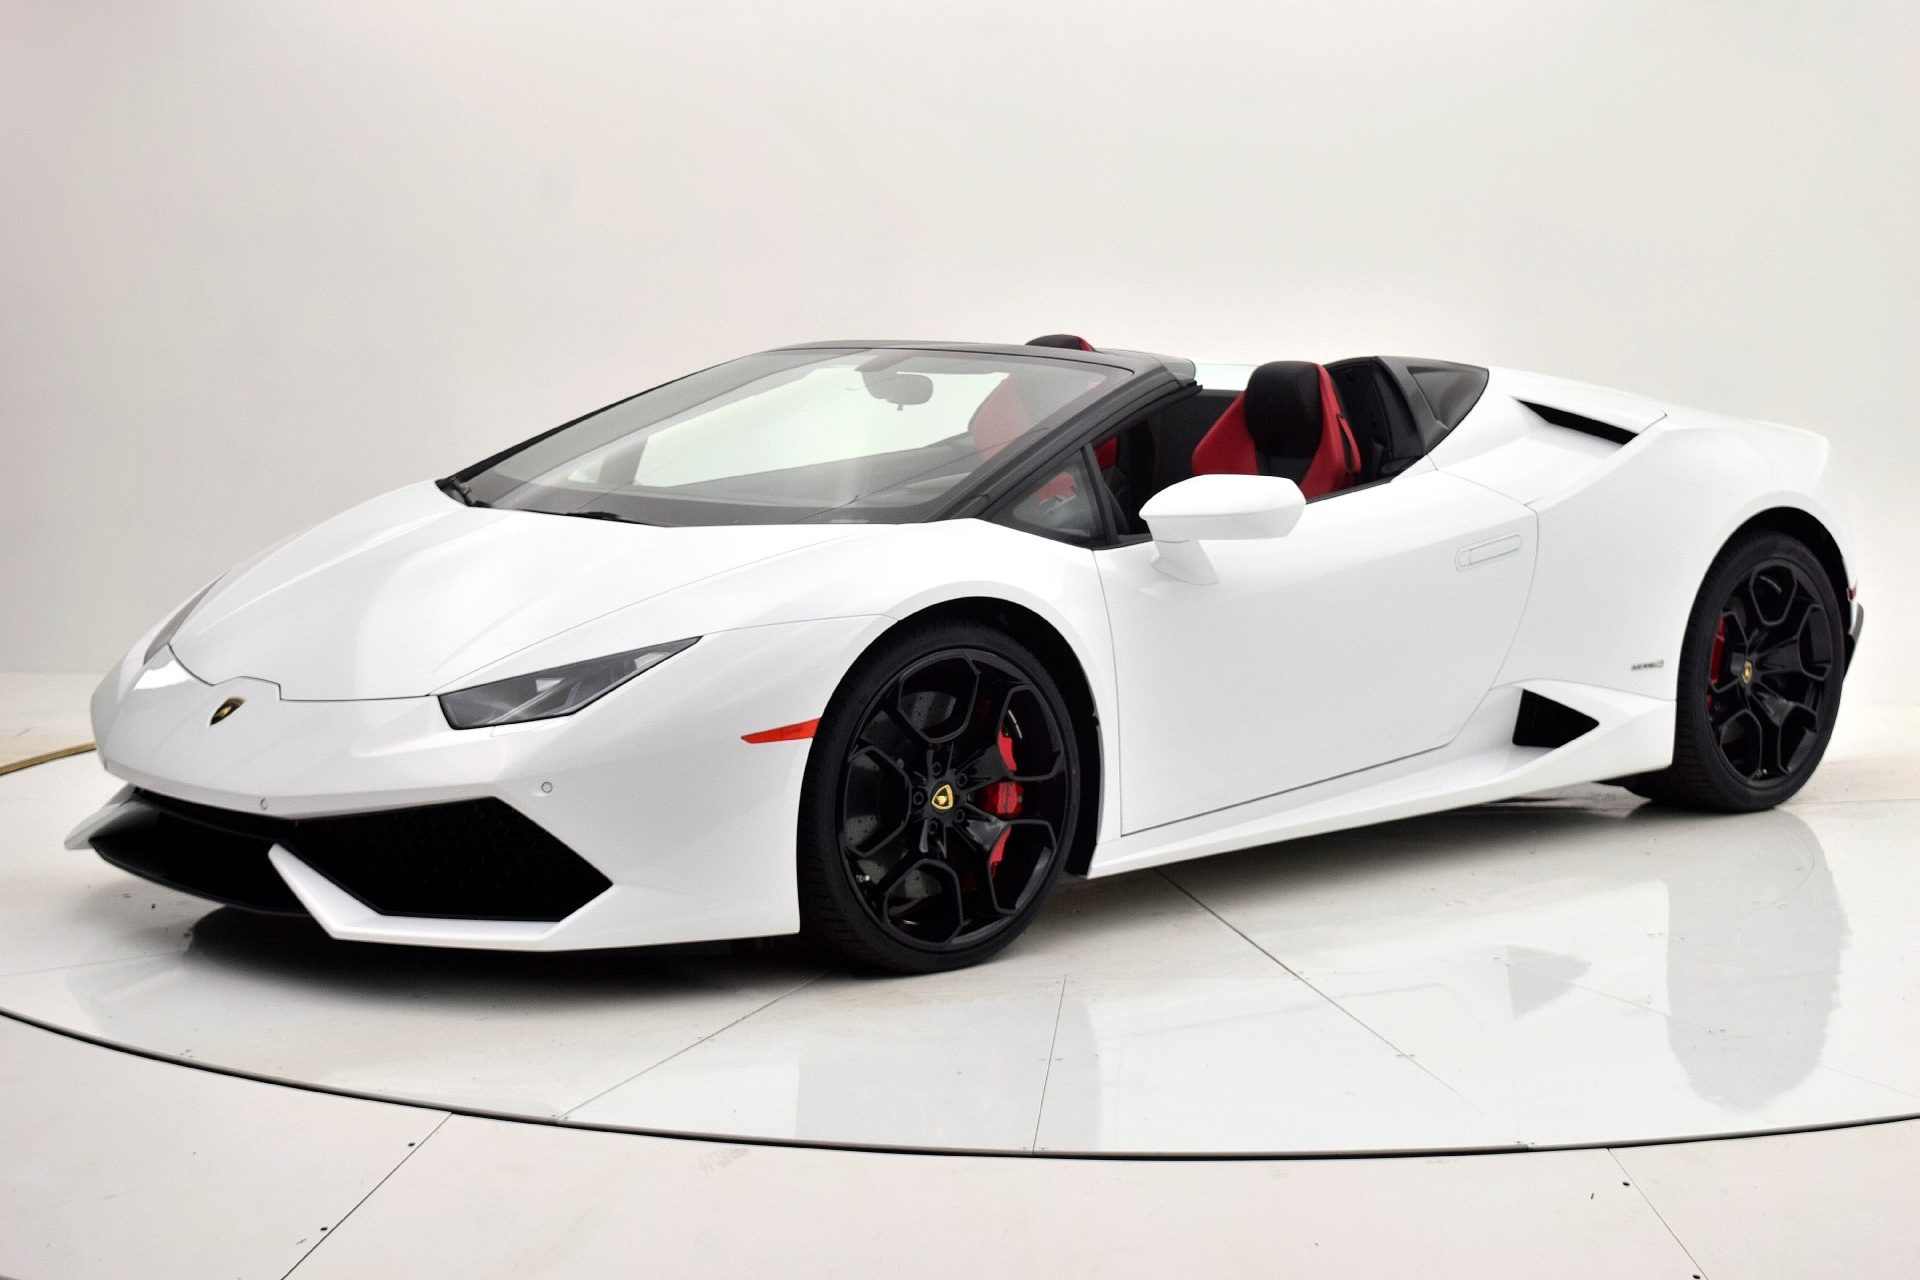 Used 2016 Lamborghini Huracan LP 610-4 Spyder for sale Sold at F.C. Kerbeck Bentley Palmyra N.J. in Palmyra NJ 08065 2